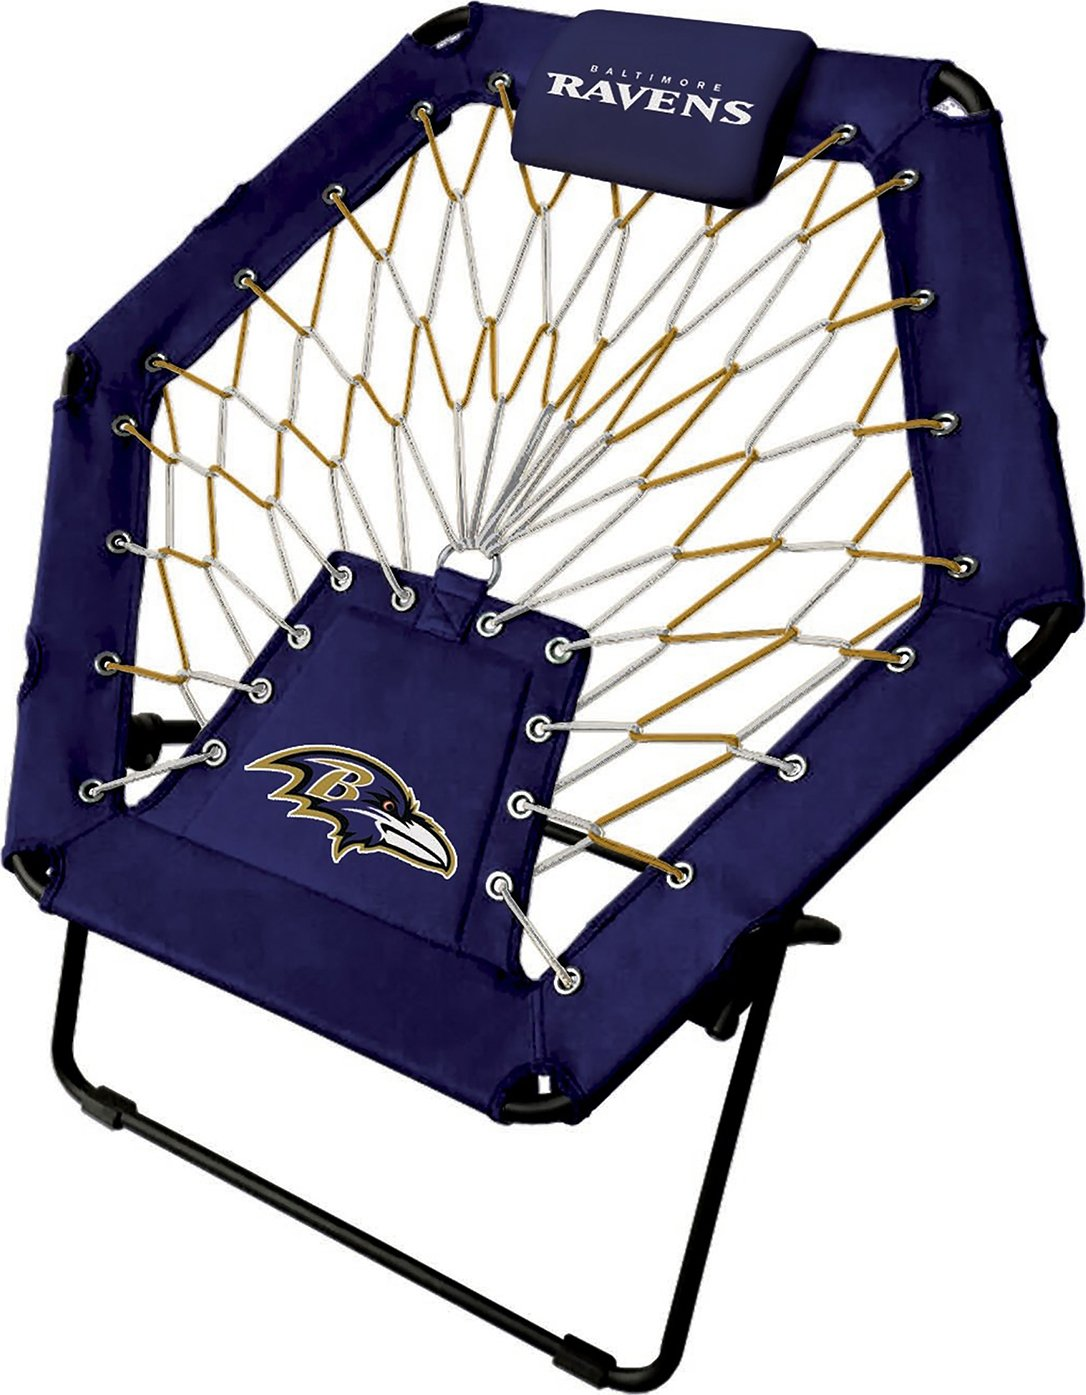 Imperial Officially Licensed NFL Furniture: Premium Bungee Chair, Baltimore Ravens by Imperial